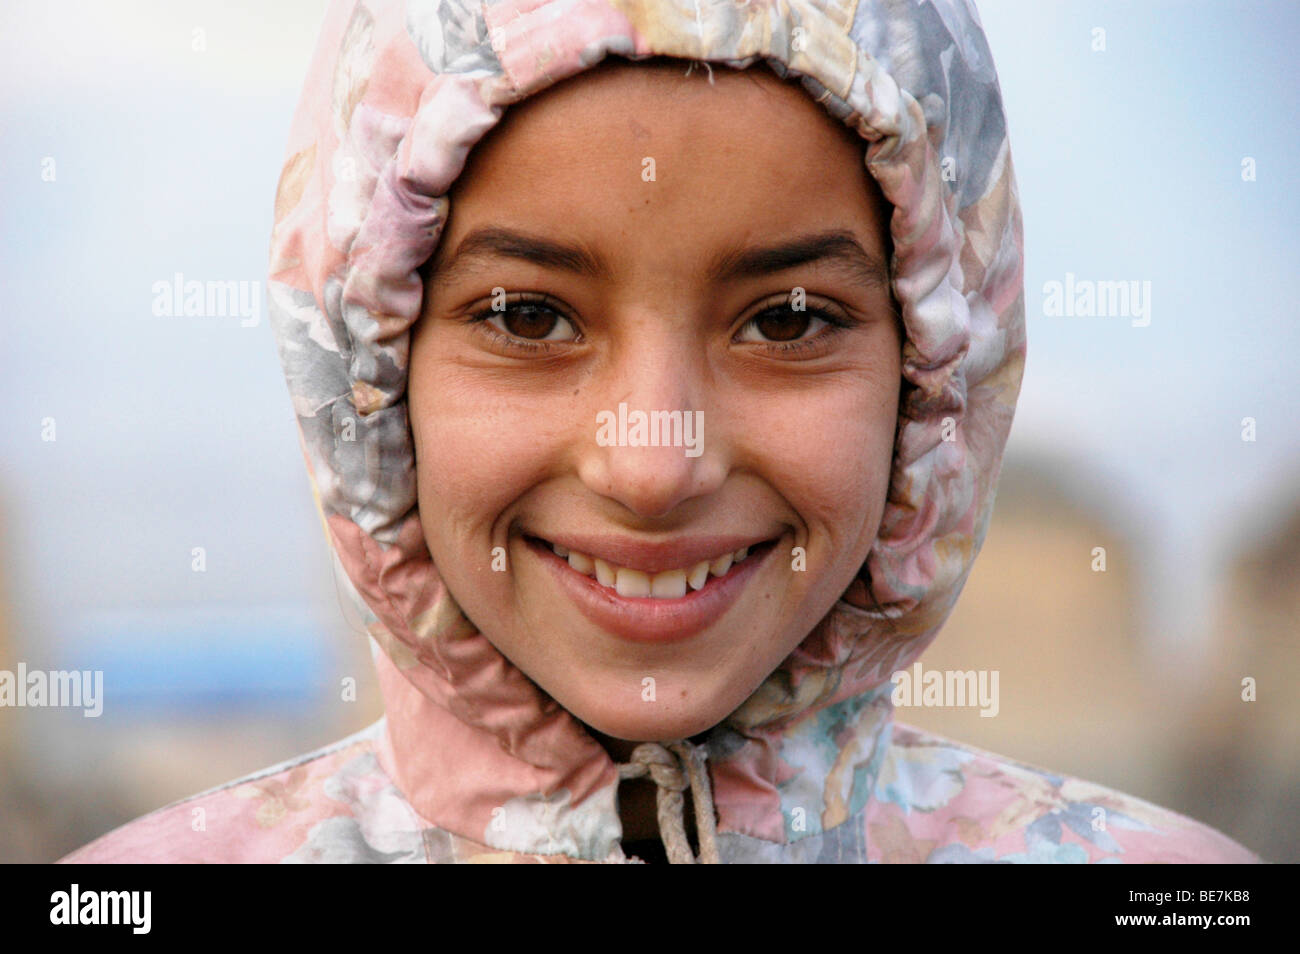 A portrait of a young, impoverished Afghan girl taken on the outskirts of Kabul, Afghanistan. - Stock Image